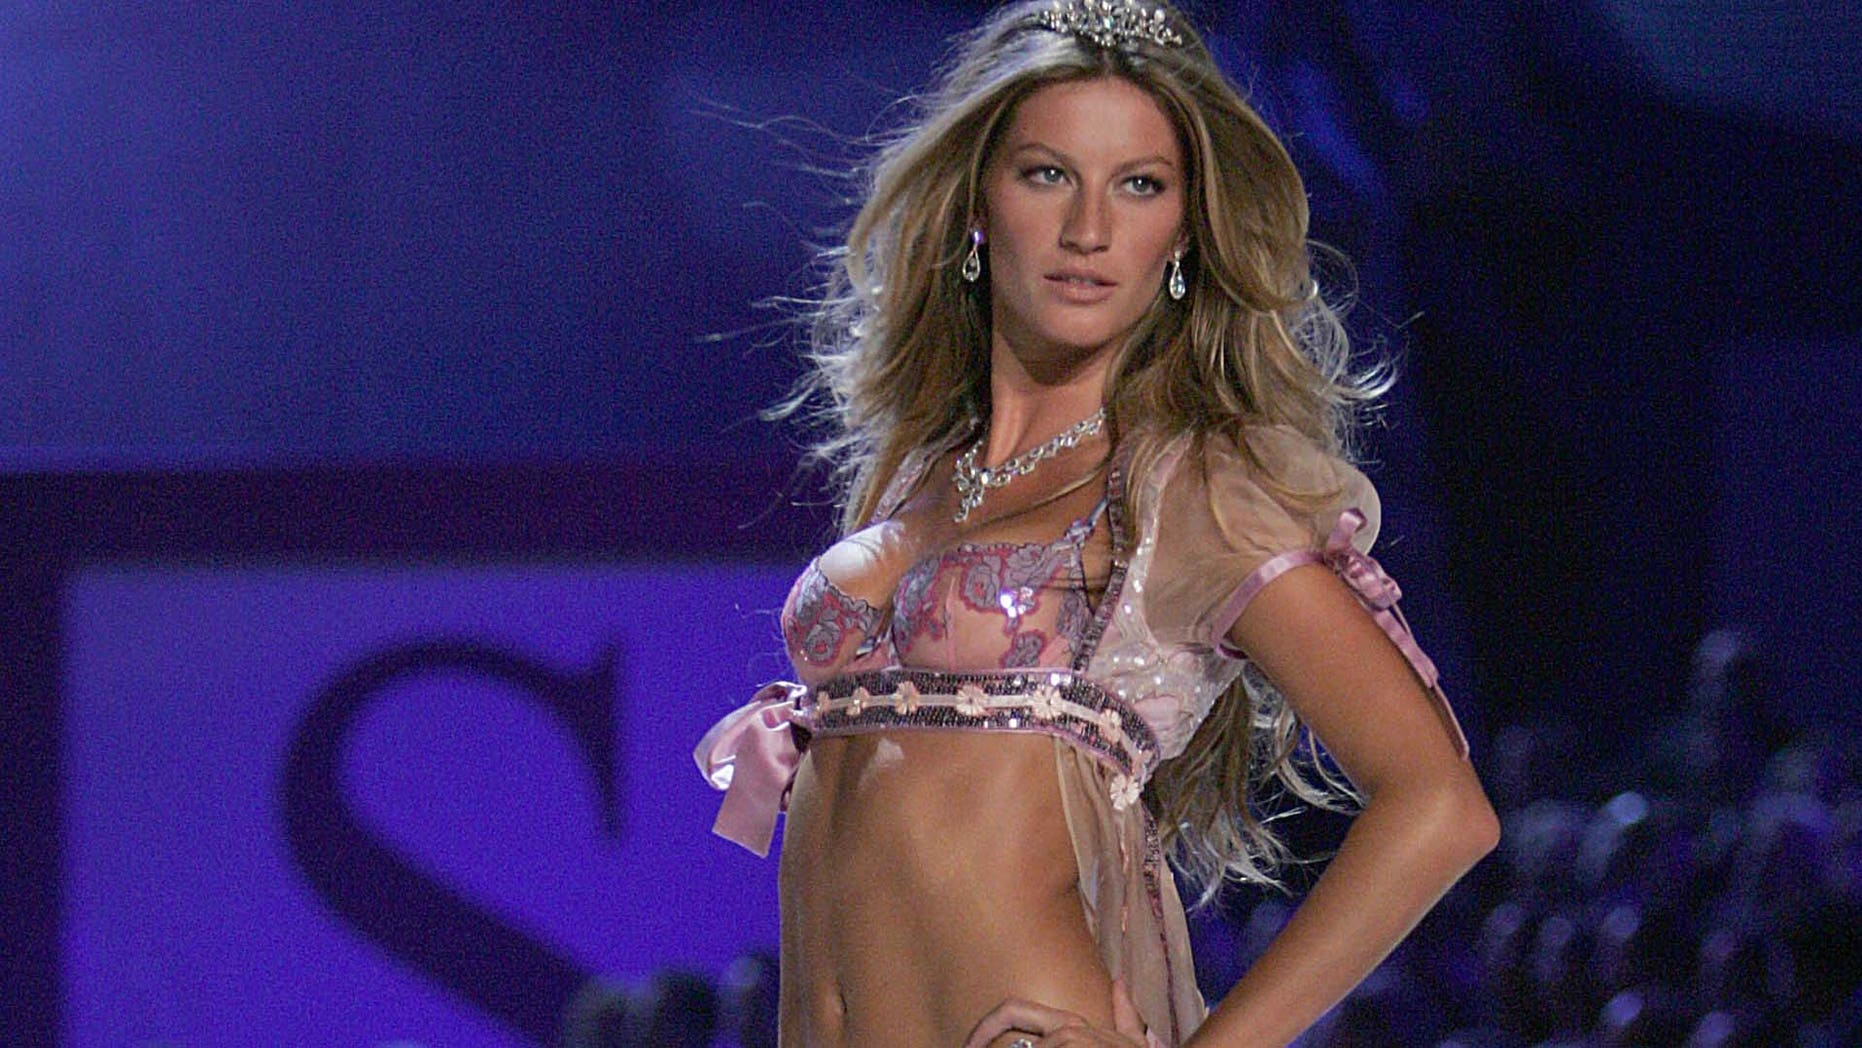 walks the runway at The Victoria's Secret Fashion Show at the 69th Regiment Armory November 9, 2005 in New York City.